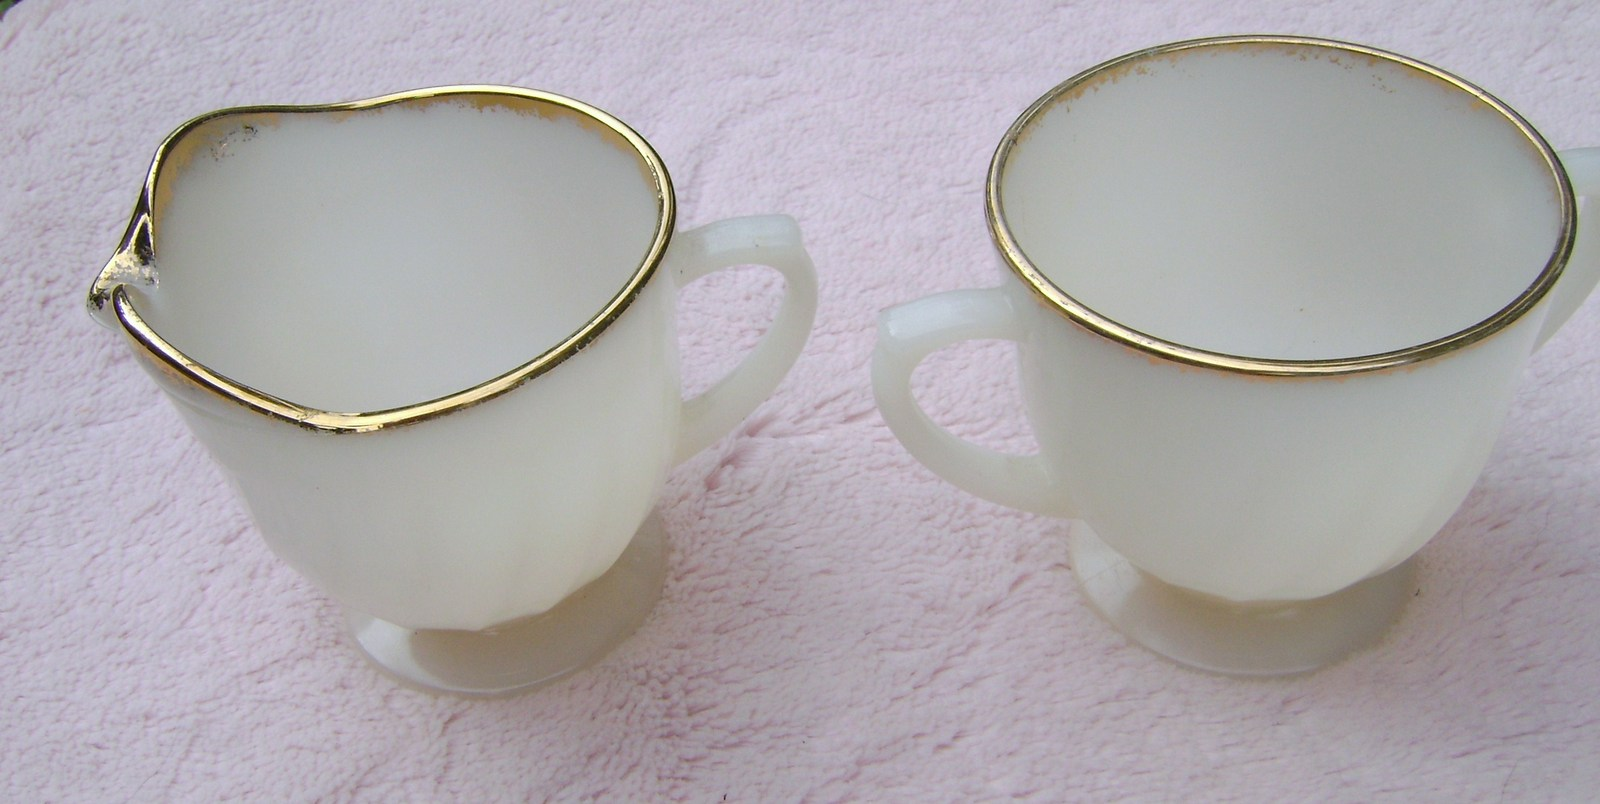 Primary image for Small Anchor Hocking Milk Glass Sugar & Creamer